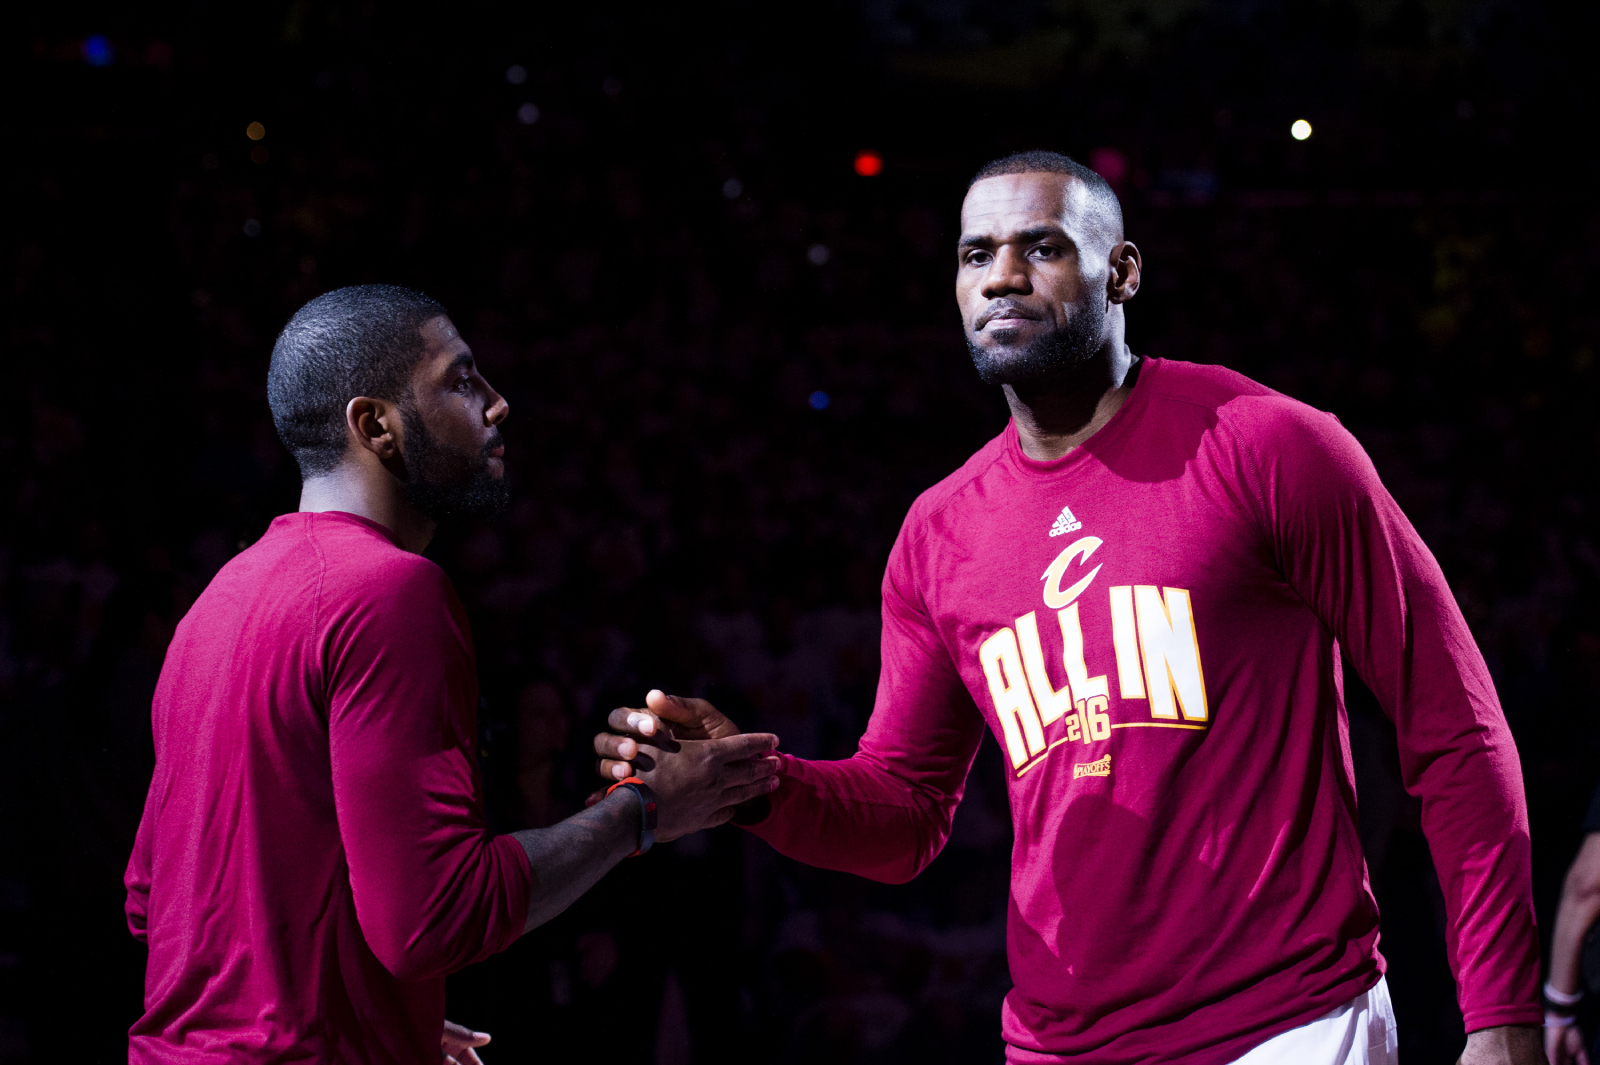 There has been a ton of speculation about the relationship between Kyrie Irving and LeBron James. Well, we maybe have some answers now.